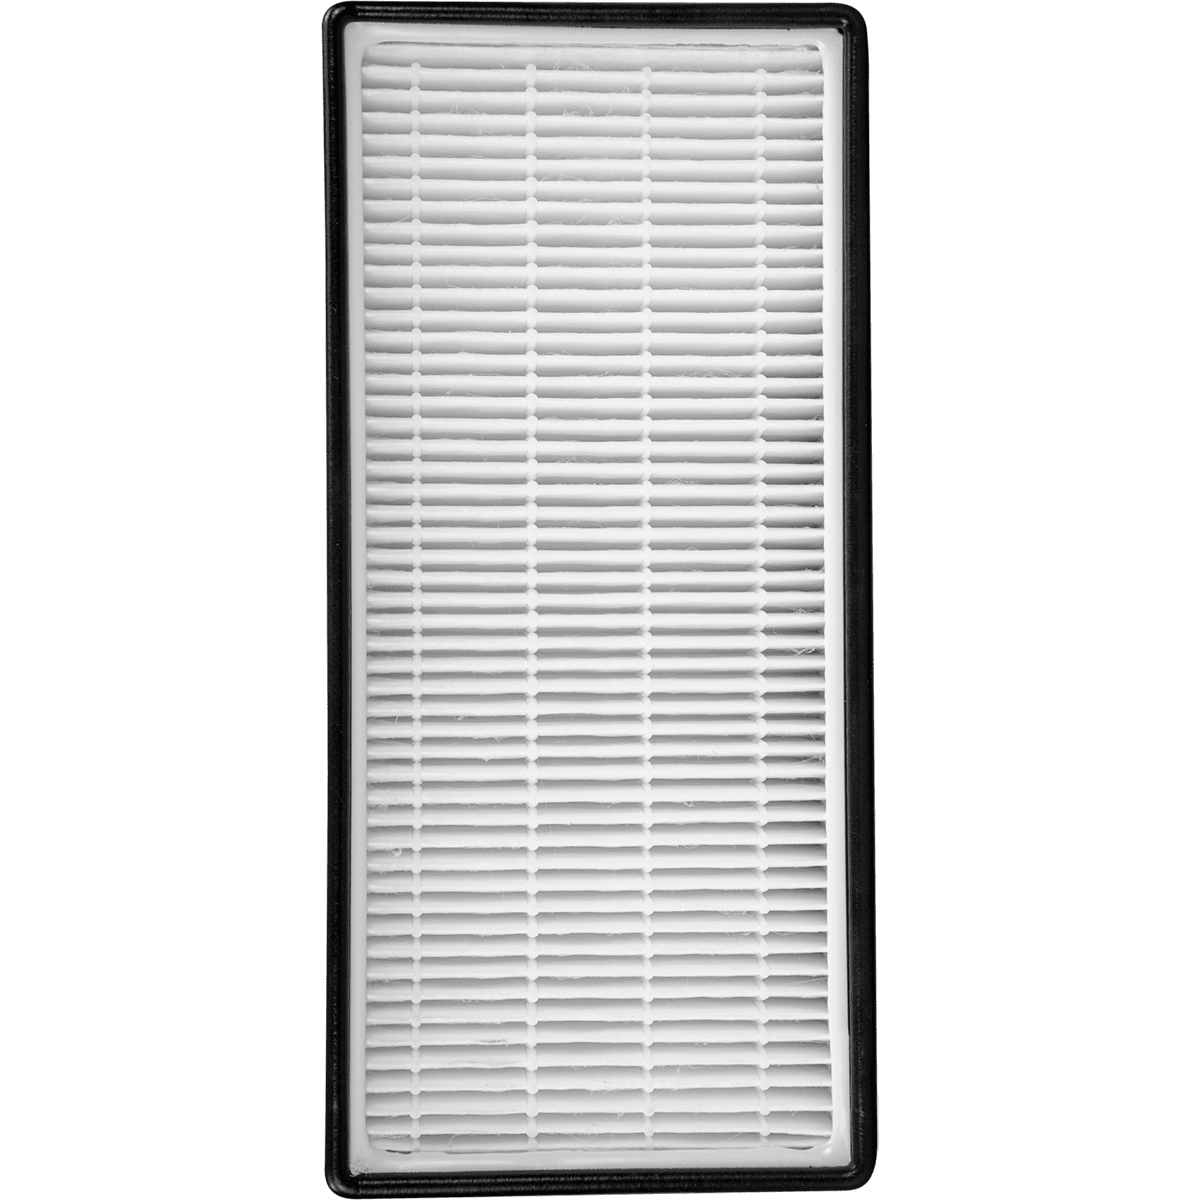 Filter-Monster True HEPA Filter for Whirlpool Tower Air Purifier wh6367